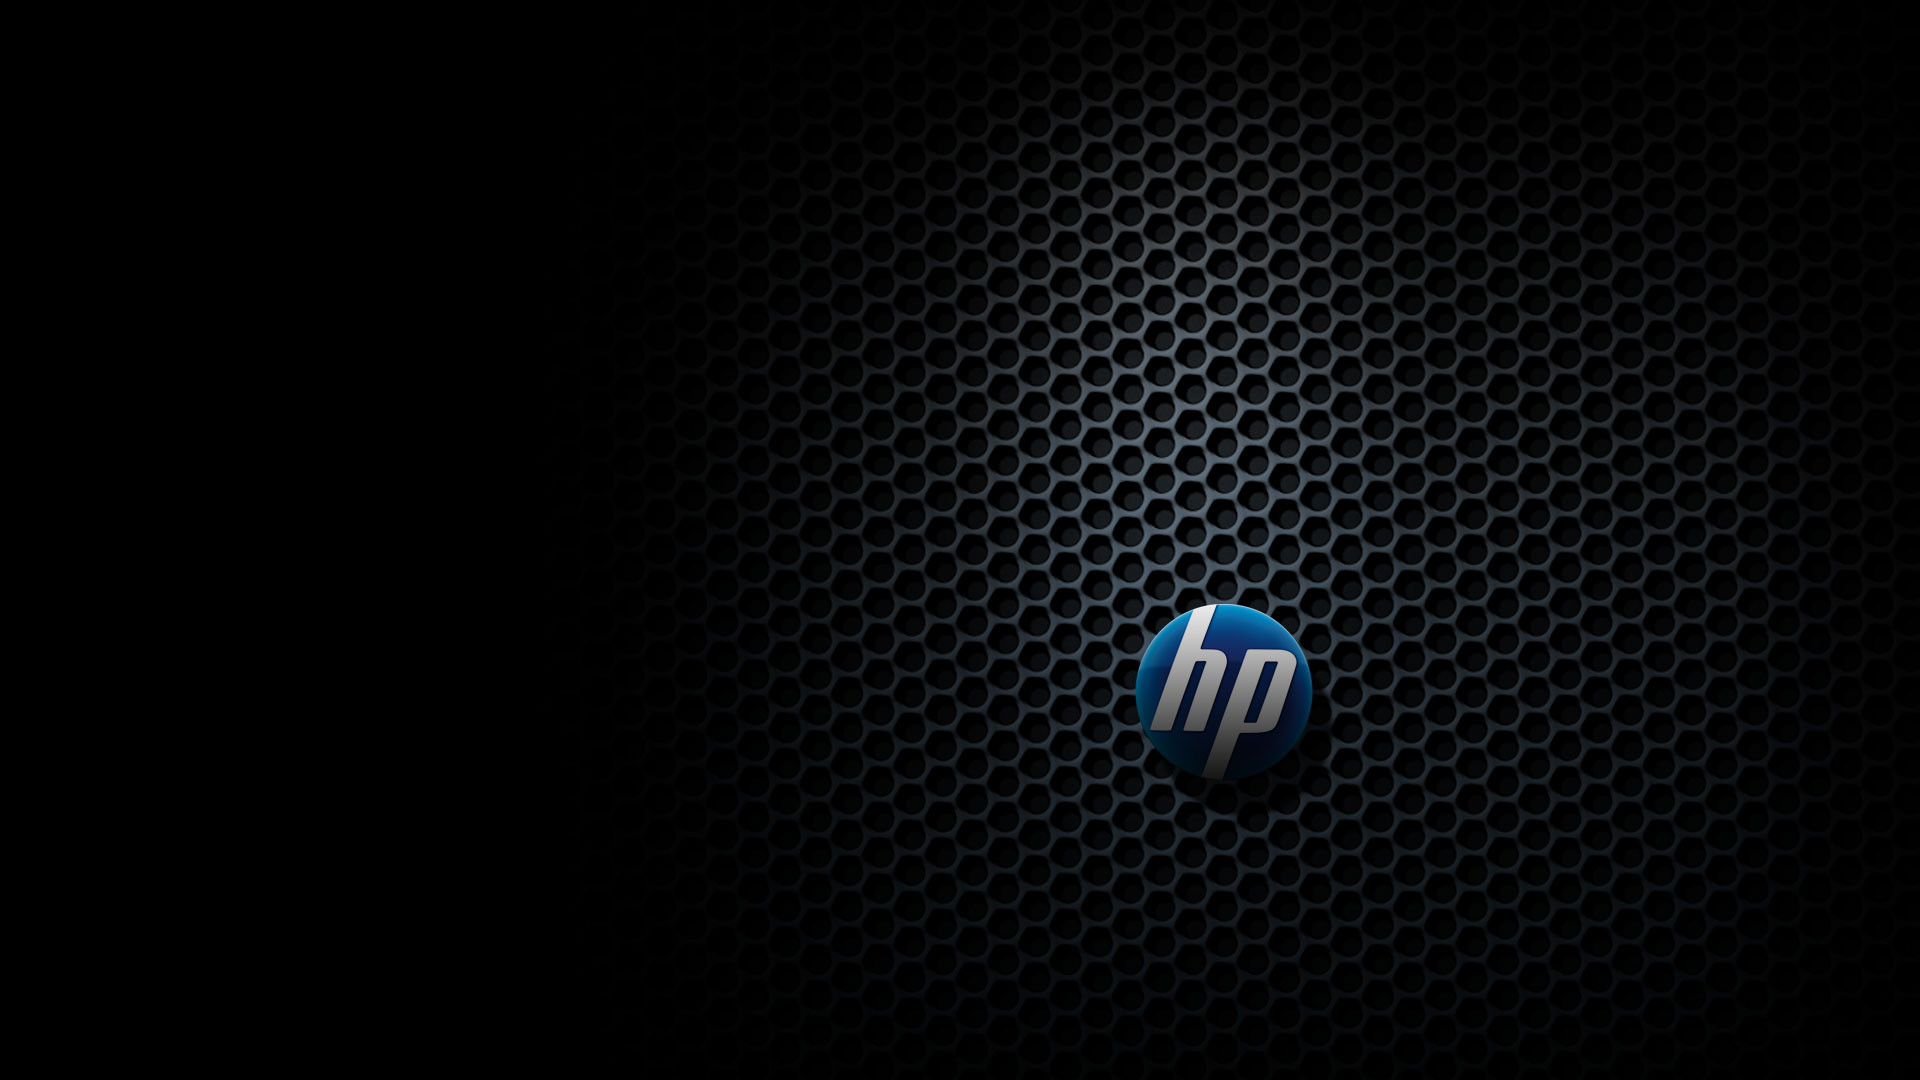 hp desktop wallpaper